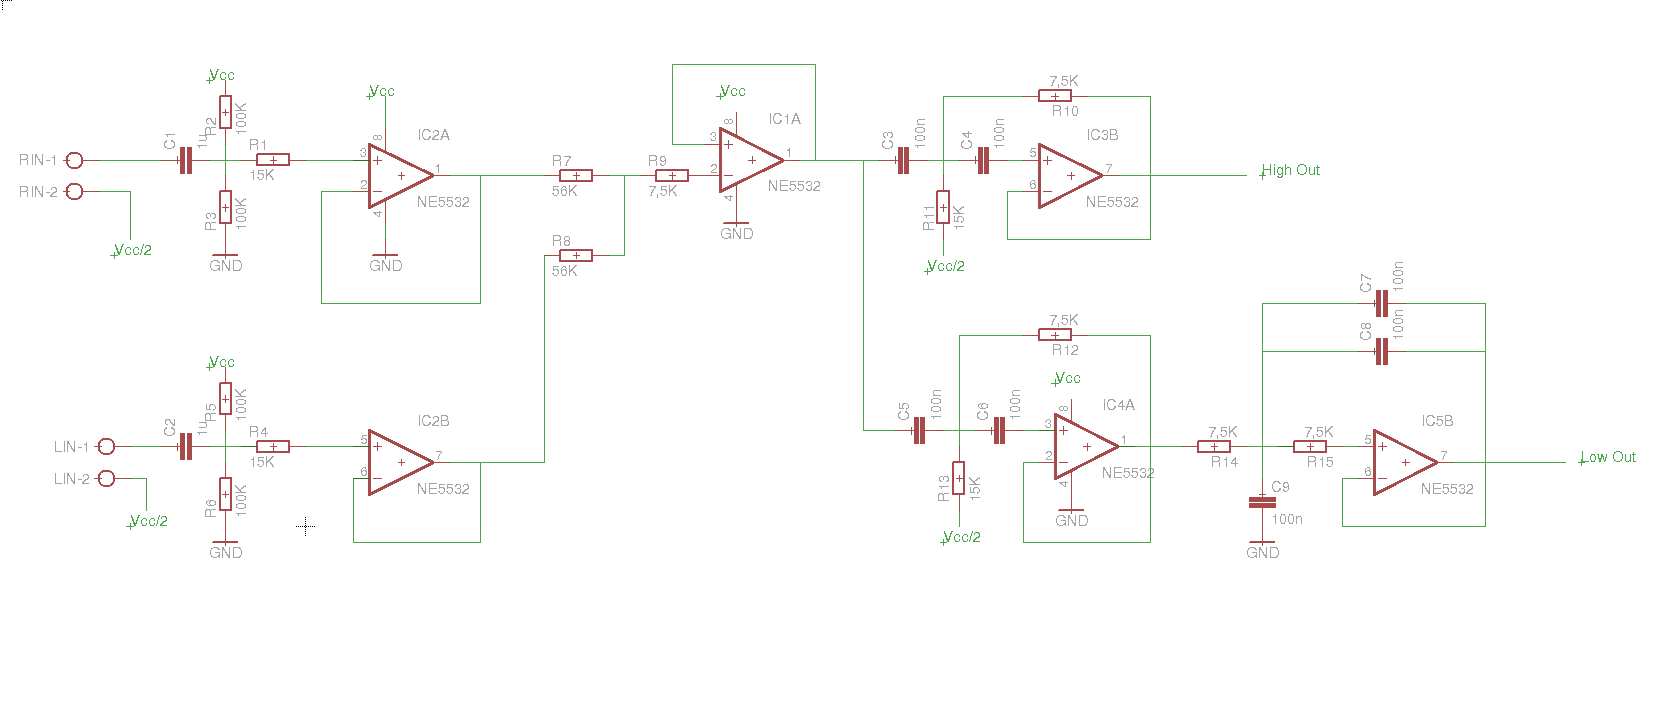 Designing A Noob Preamp Single Supply Diyaudio Opamp Audio Mixer Circuit Diagram With Ne5532 Click The Image To Open In Full Size